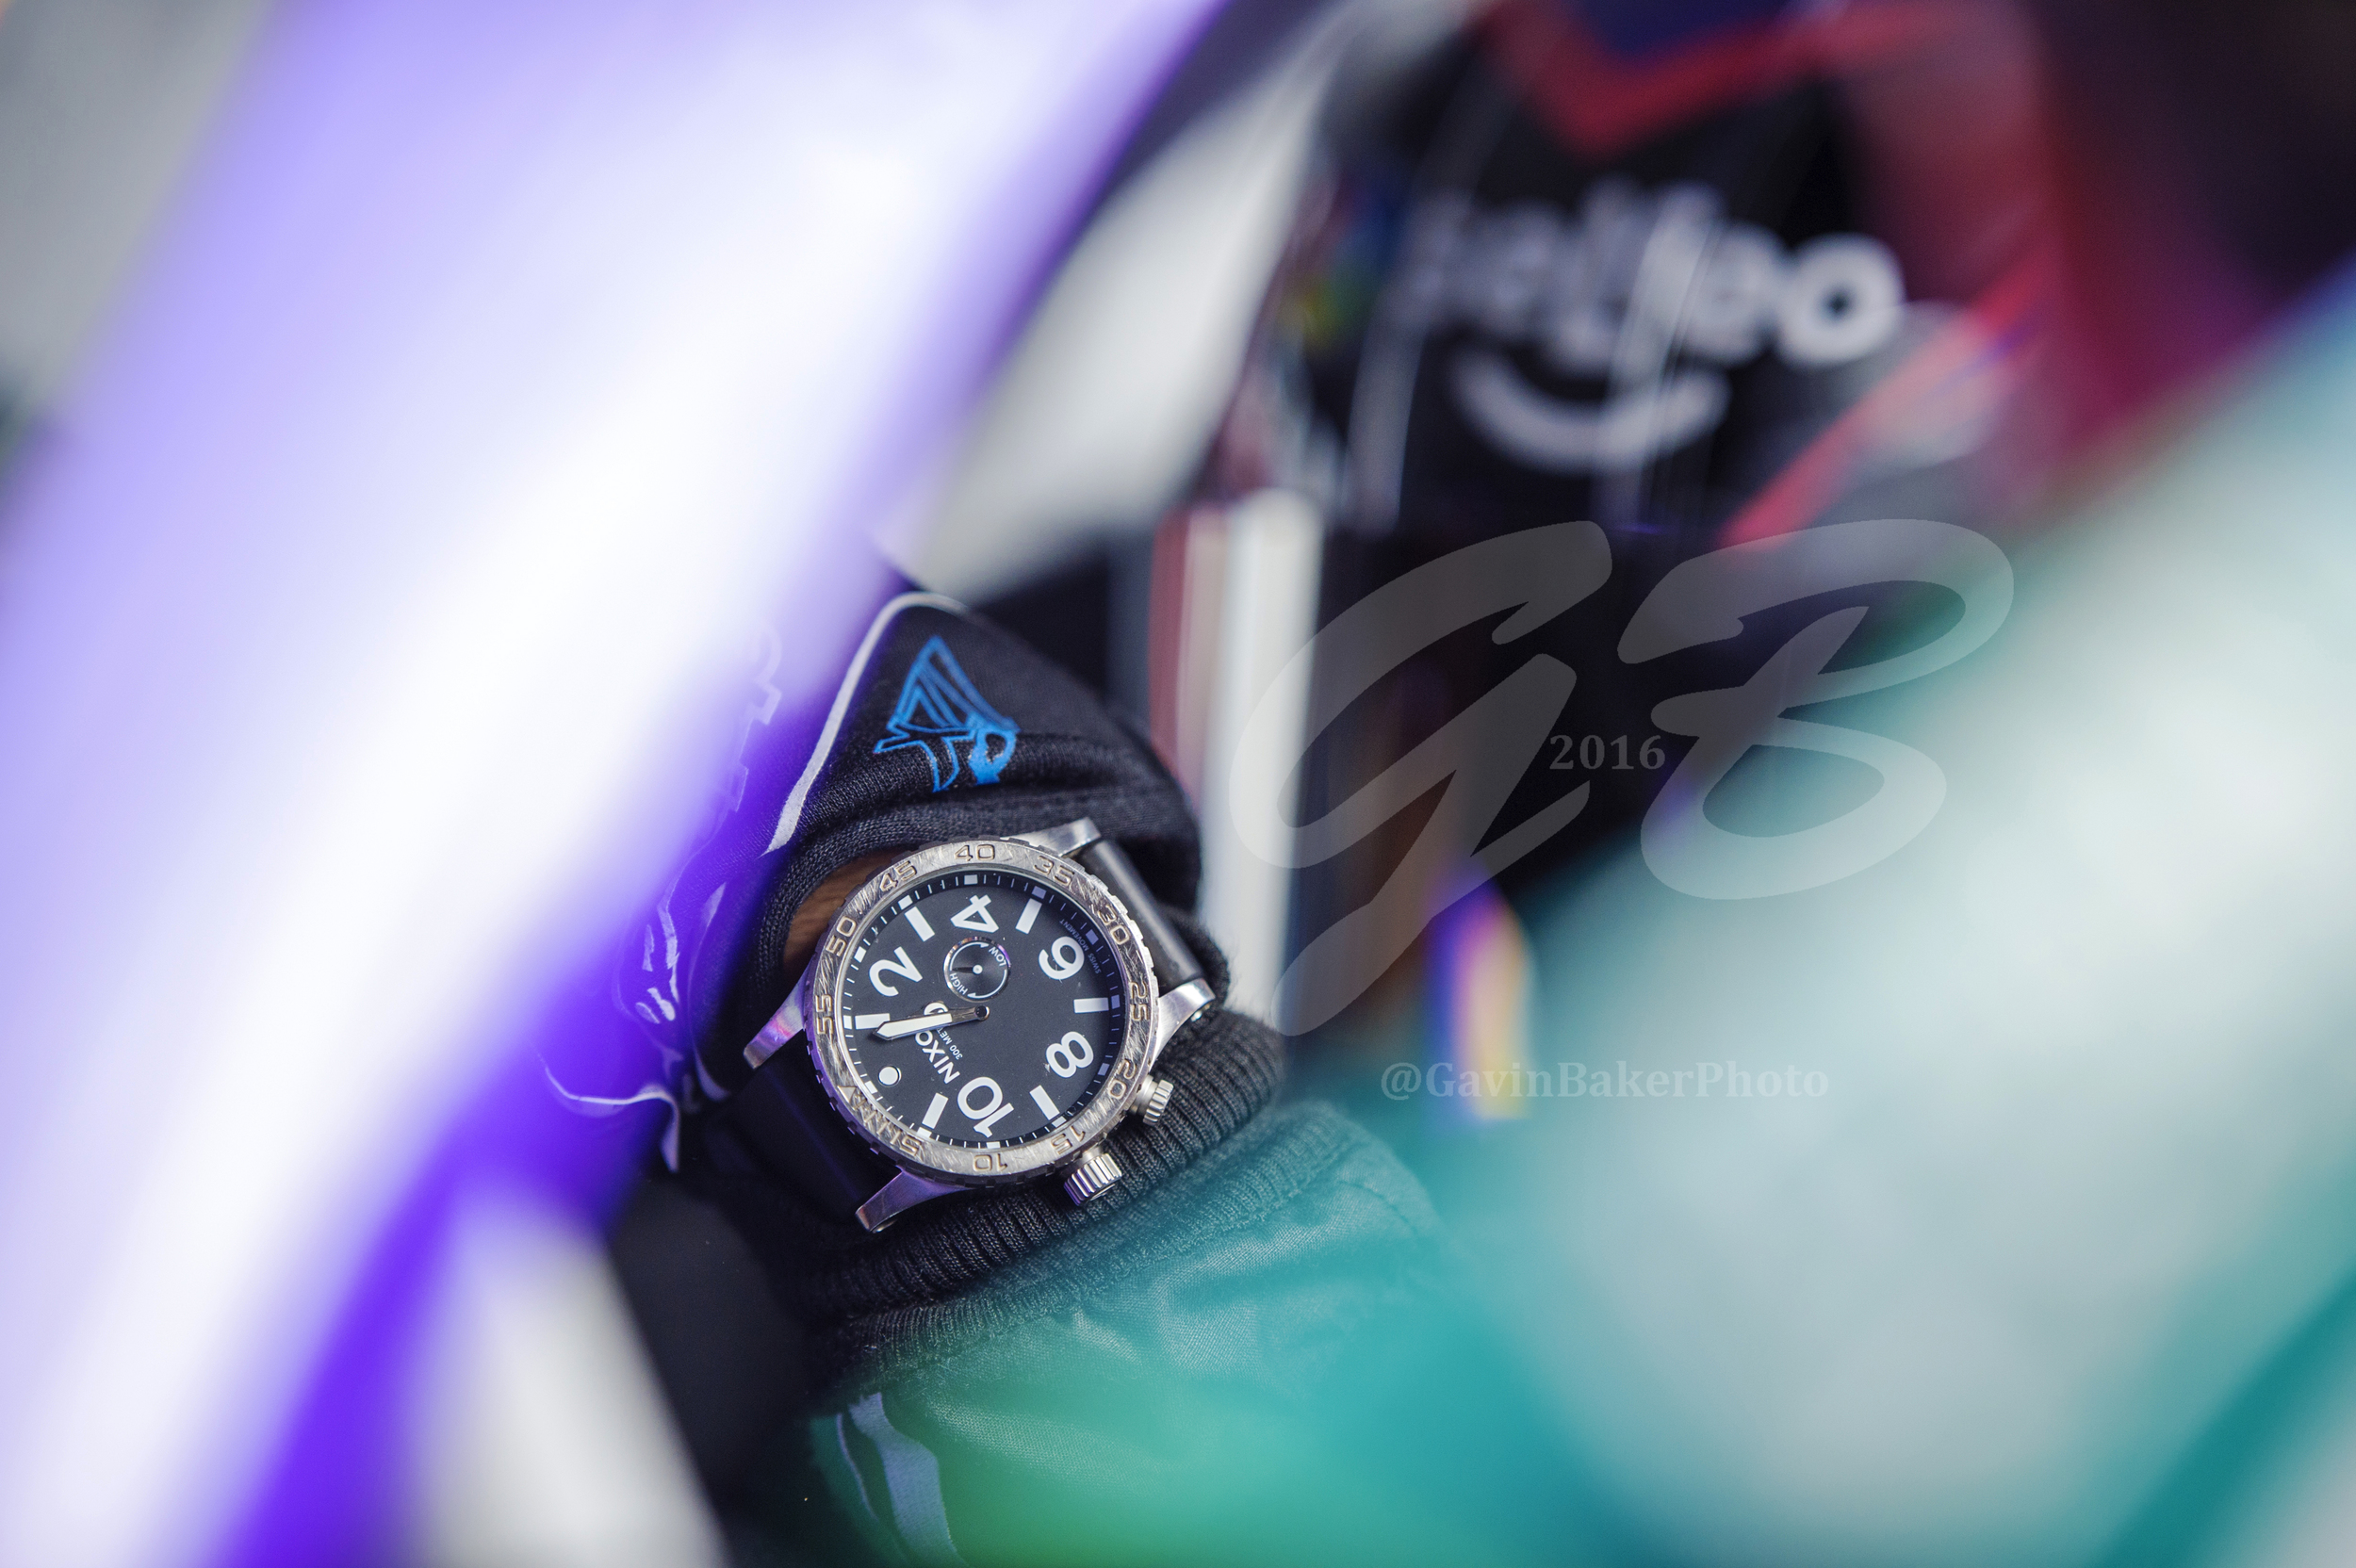 Darrell Wallace Jr shows off his Nixon watch as he backs the #6 Selfeo Ford out of the garage